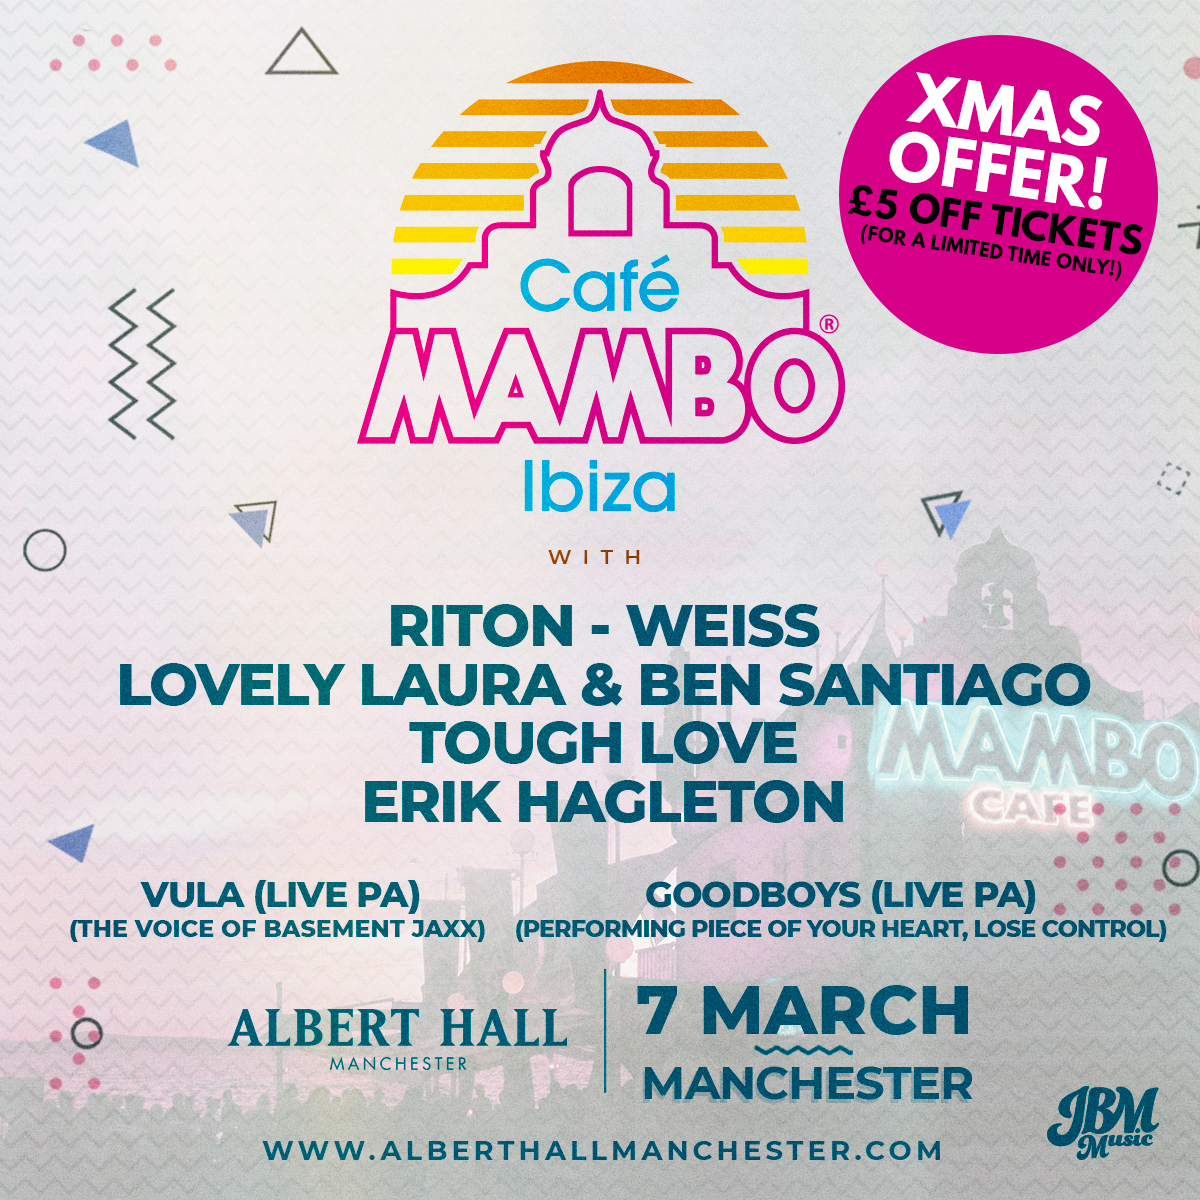 🌇Tickets for CAFE MAMBO are £5 OFF for a limited time only, grab one right about now: bit.ly/35E13MP🌇